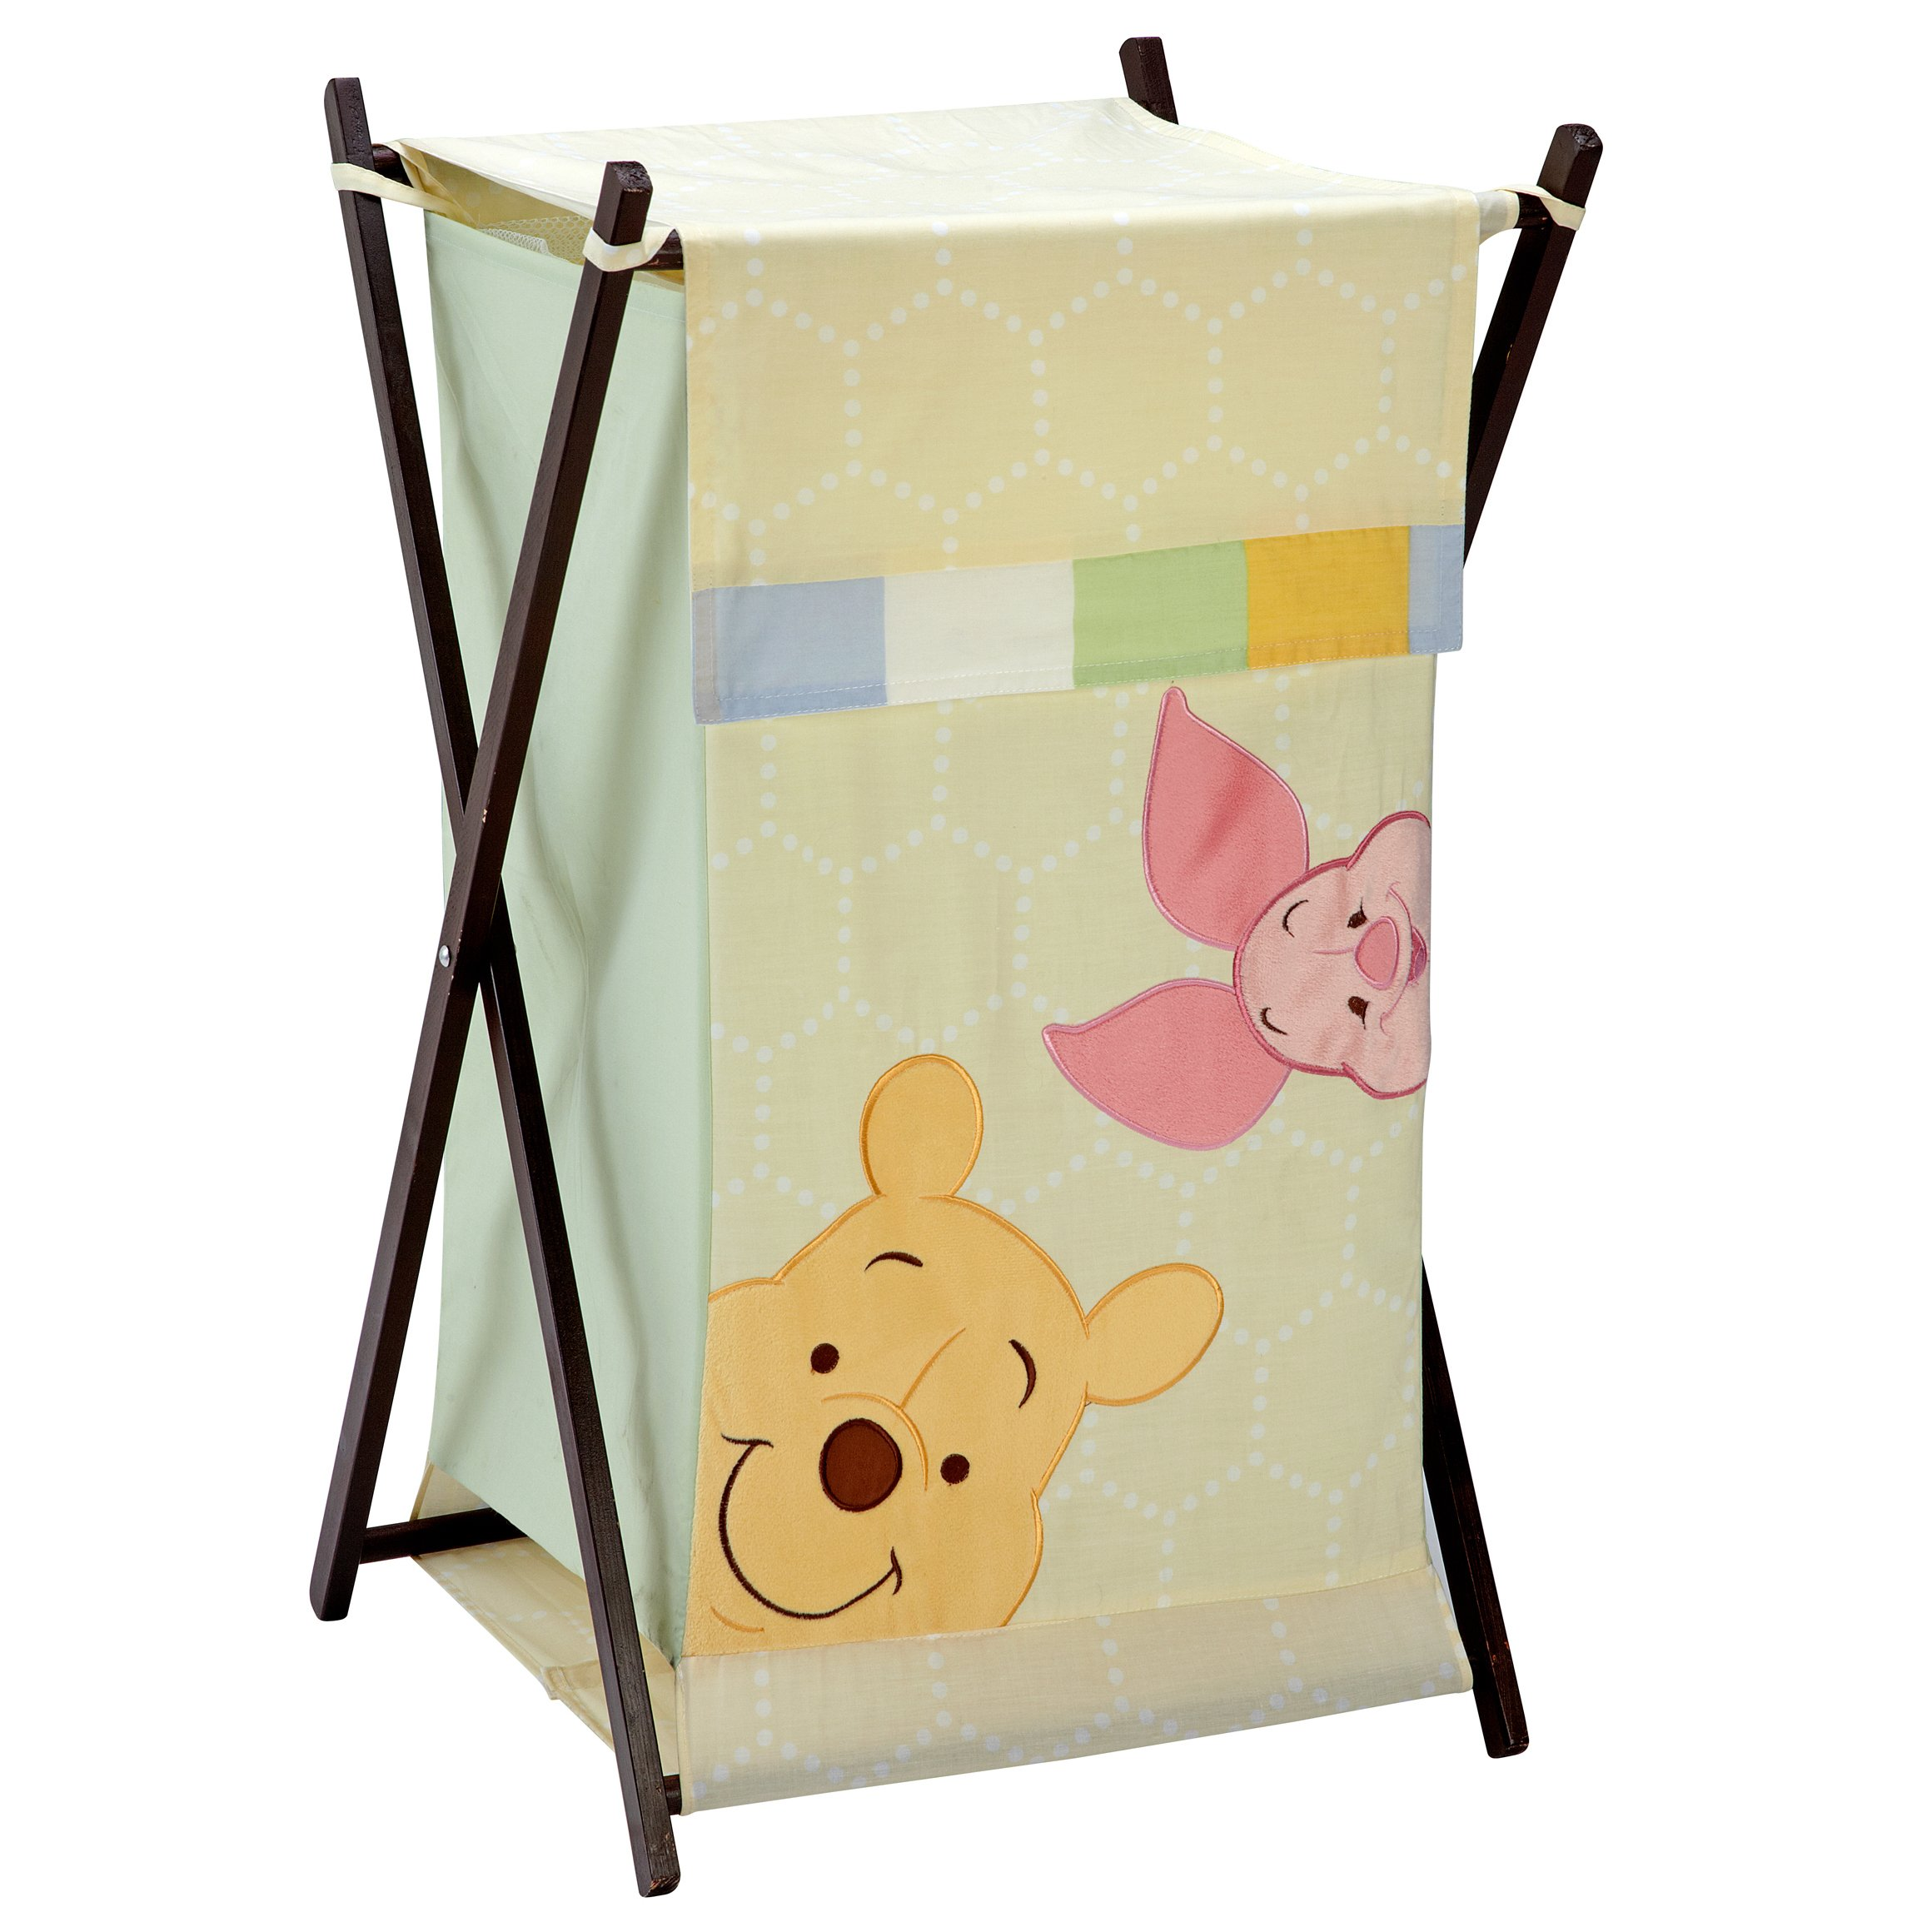 Disney Winnie the Peeking Pooh Appliqued Folding Hamper with Mesh Bag, Ivory, Yellow